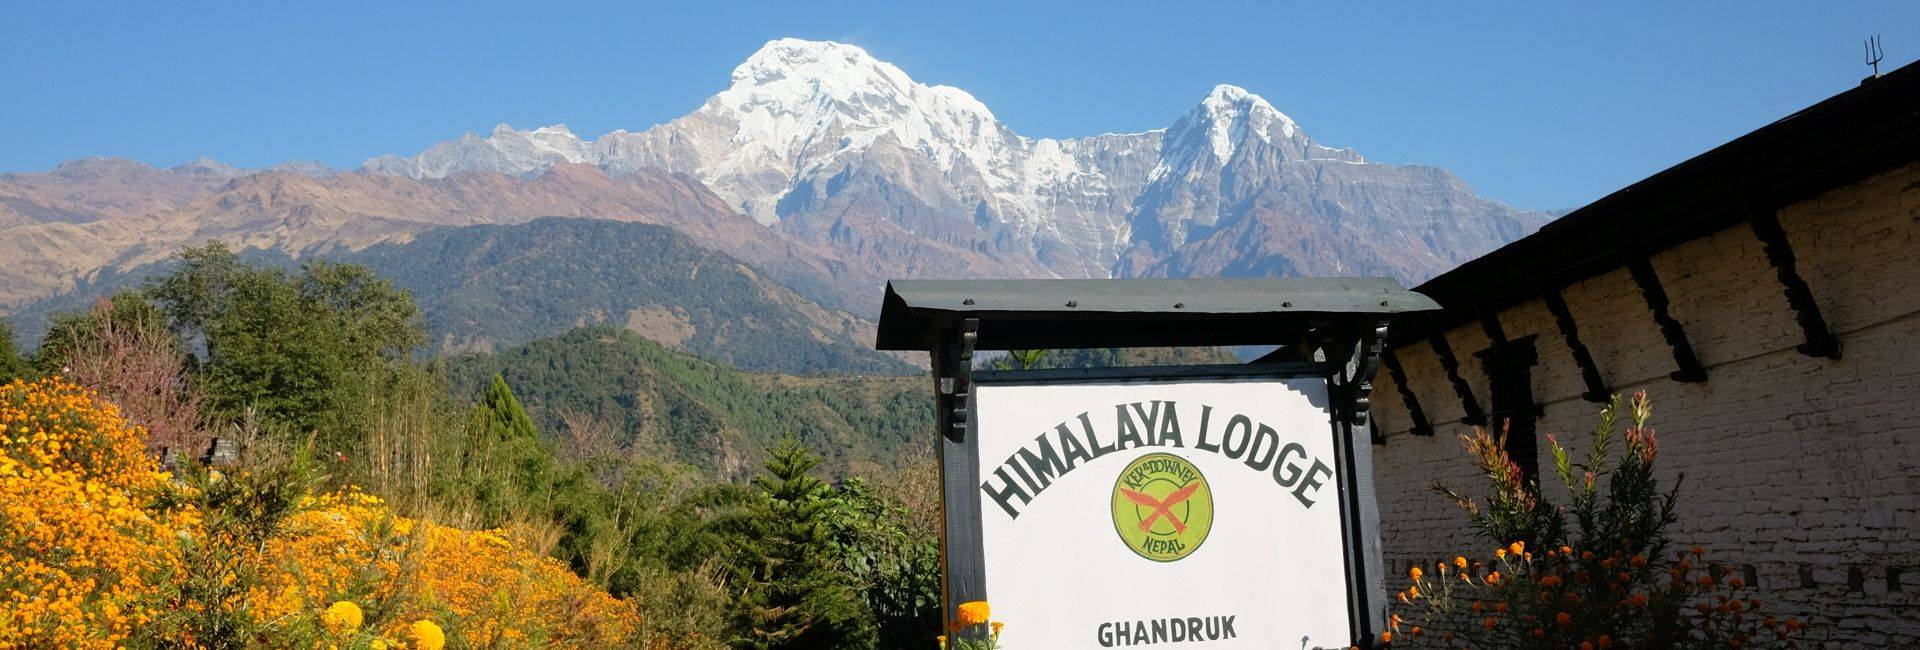 Annapurna Luxury Lodge with Ker and Downey trek in Nepal